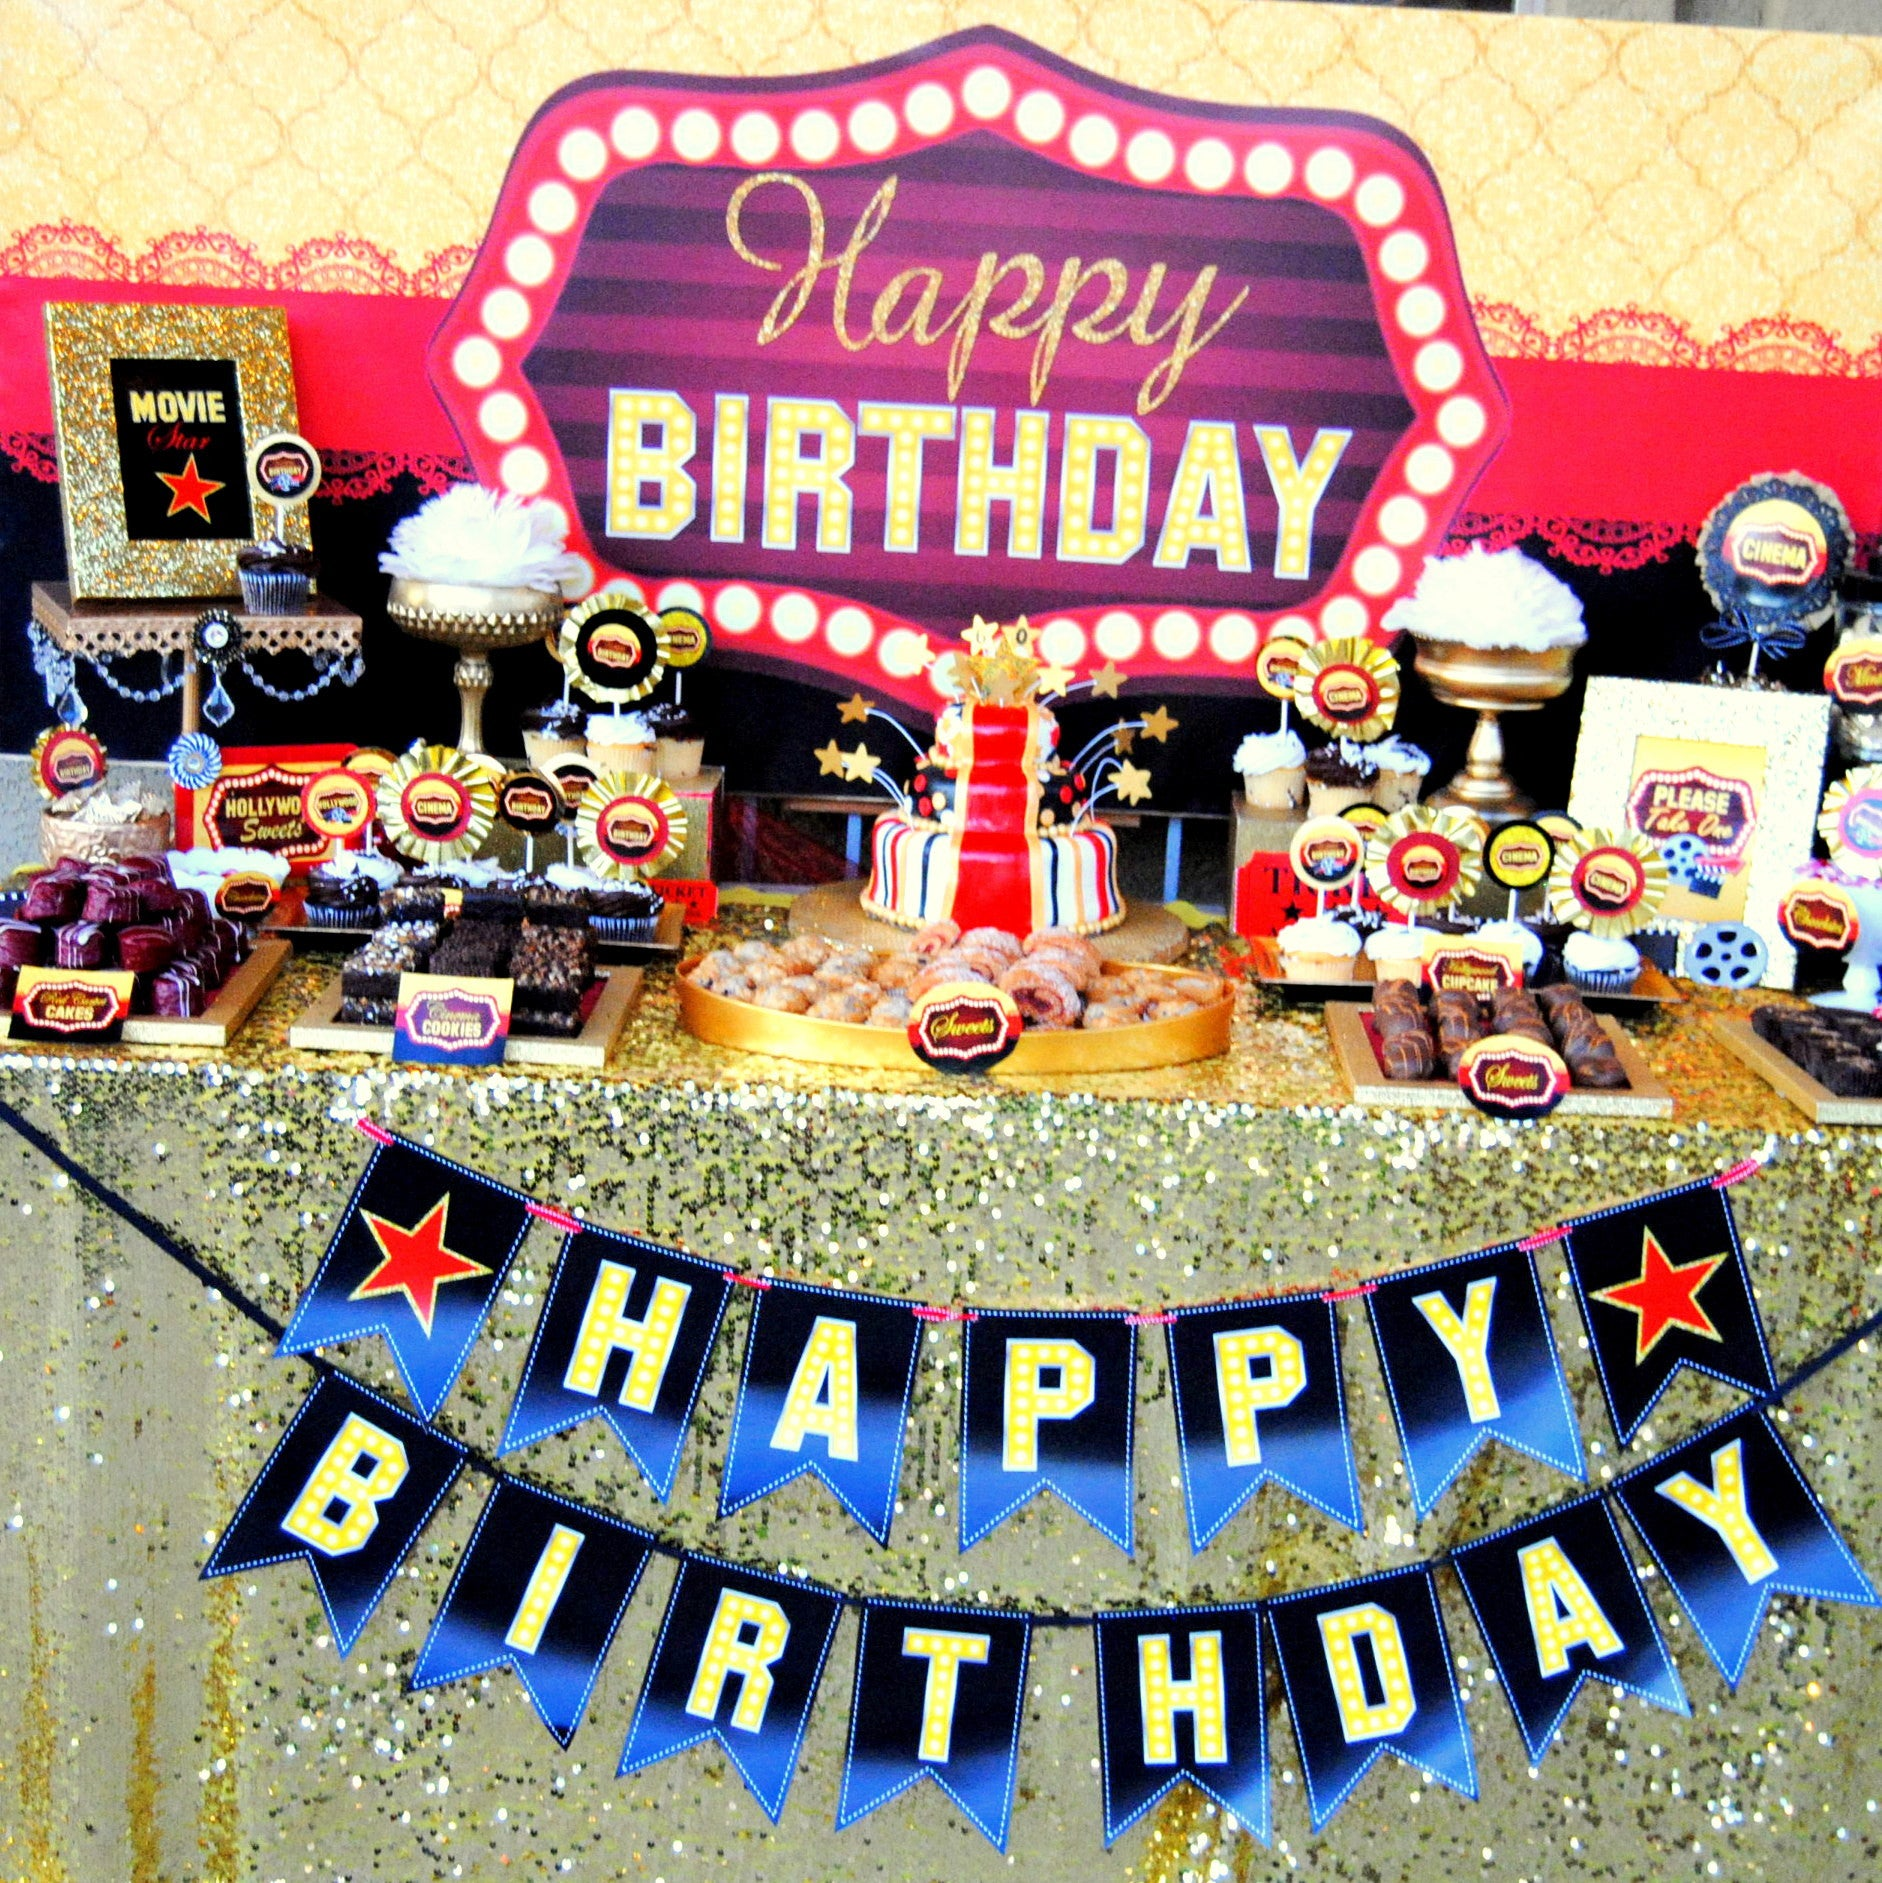 Hollywood Party Movie Coffee Bar Backdrop Coffee Bar Movie Theat Krown Kreations Celebrations